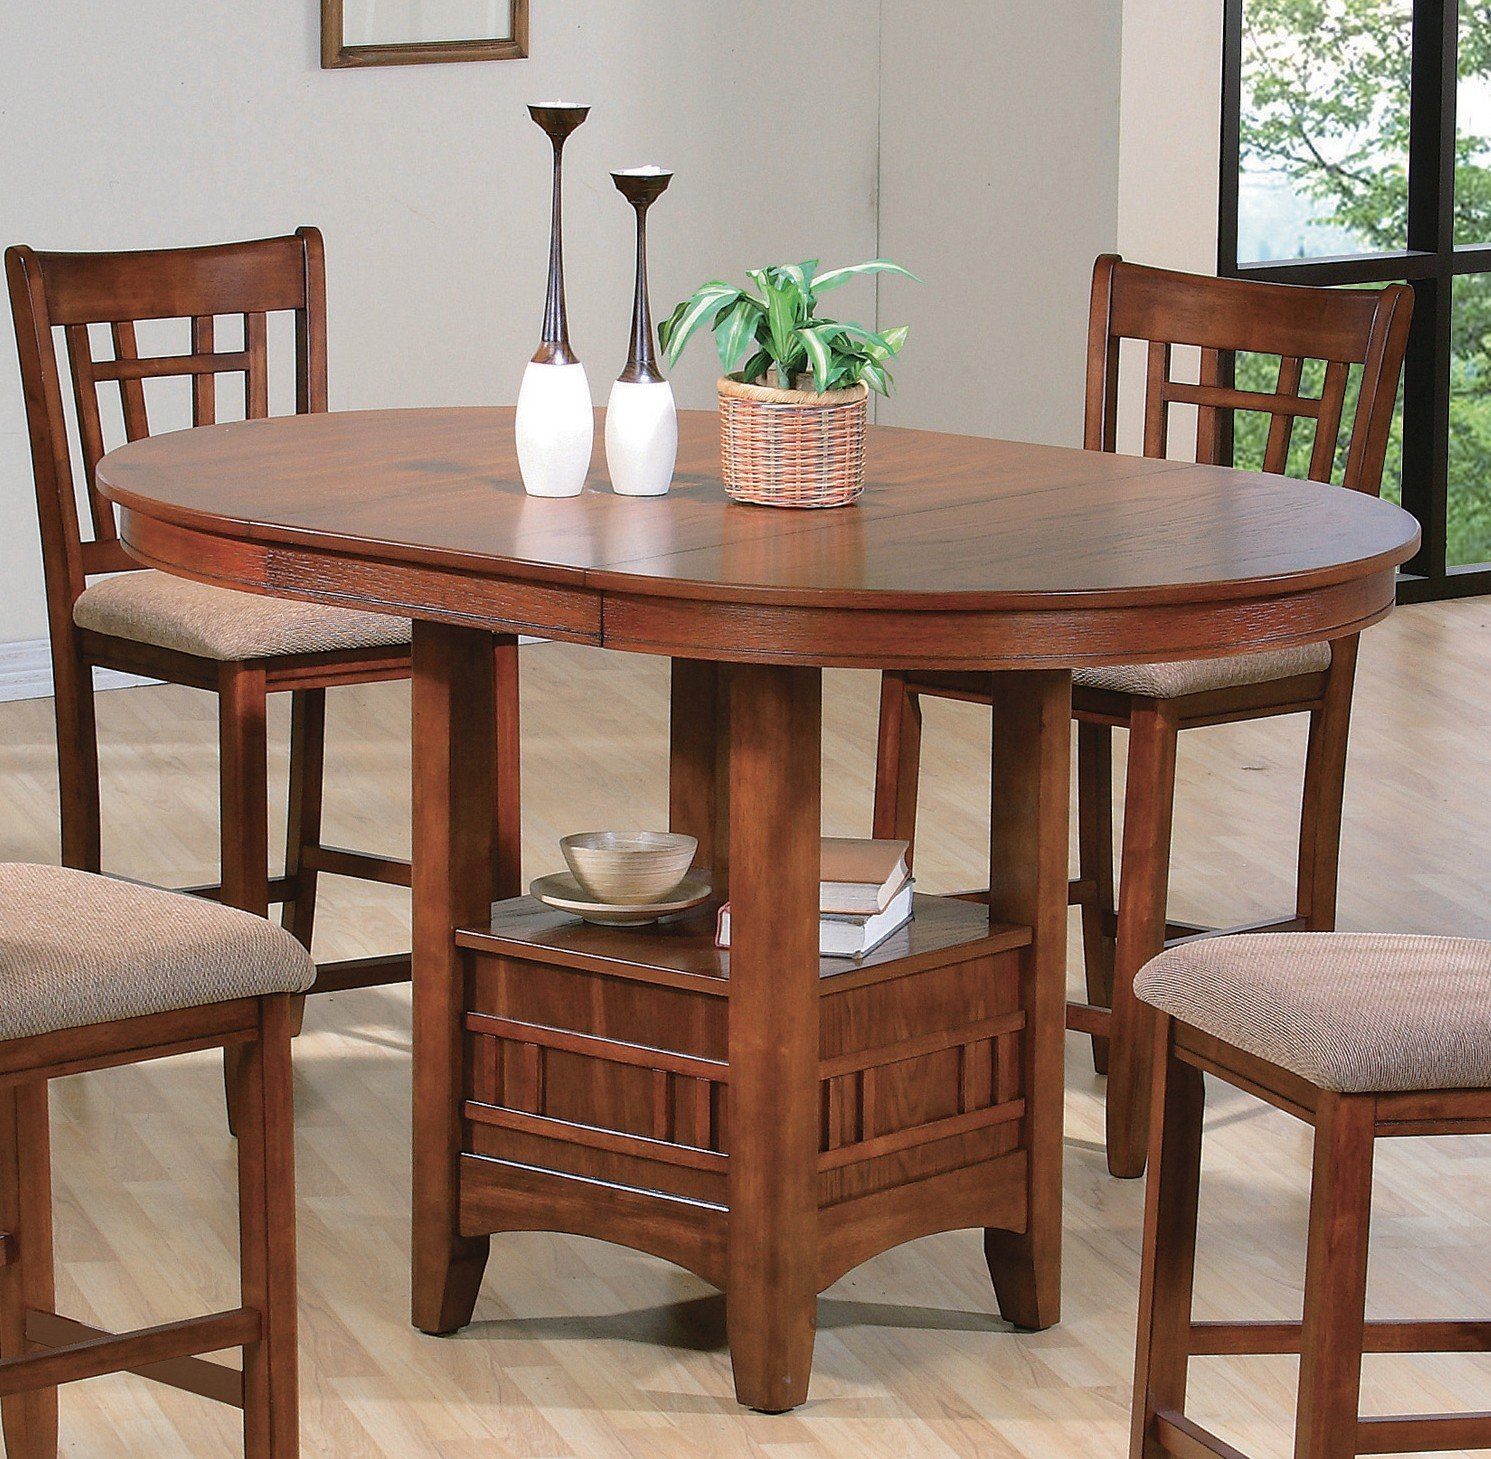 Dining Room Furniture Product: 5pc Couter Height Table 4 Chairs Cushion